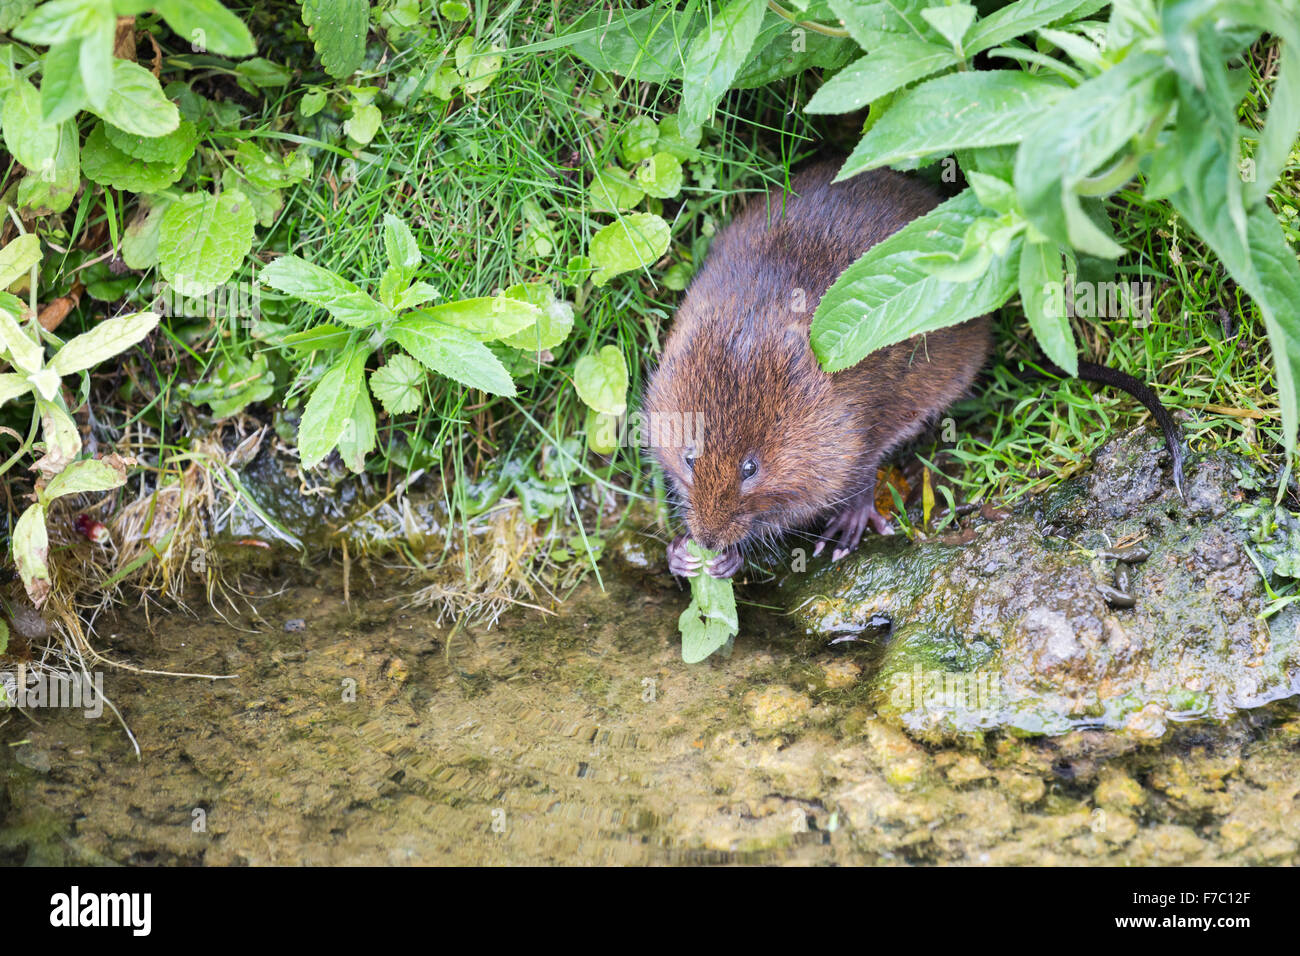 European water vole (Arvicola amphibius) eating a leaf at Wildfowl and Wetlands Trust, Arundel, West Sussex, UK - Stock Image